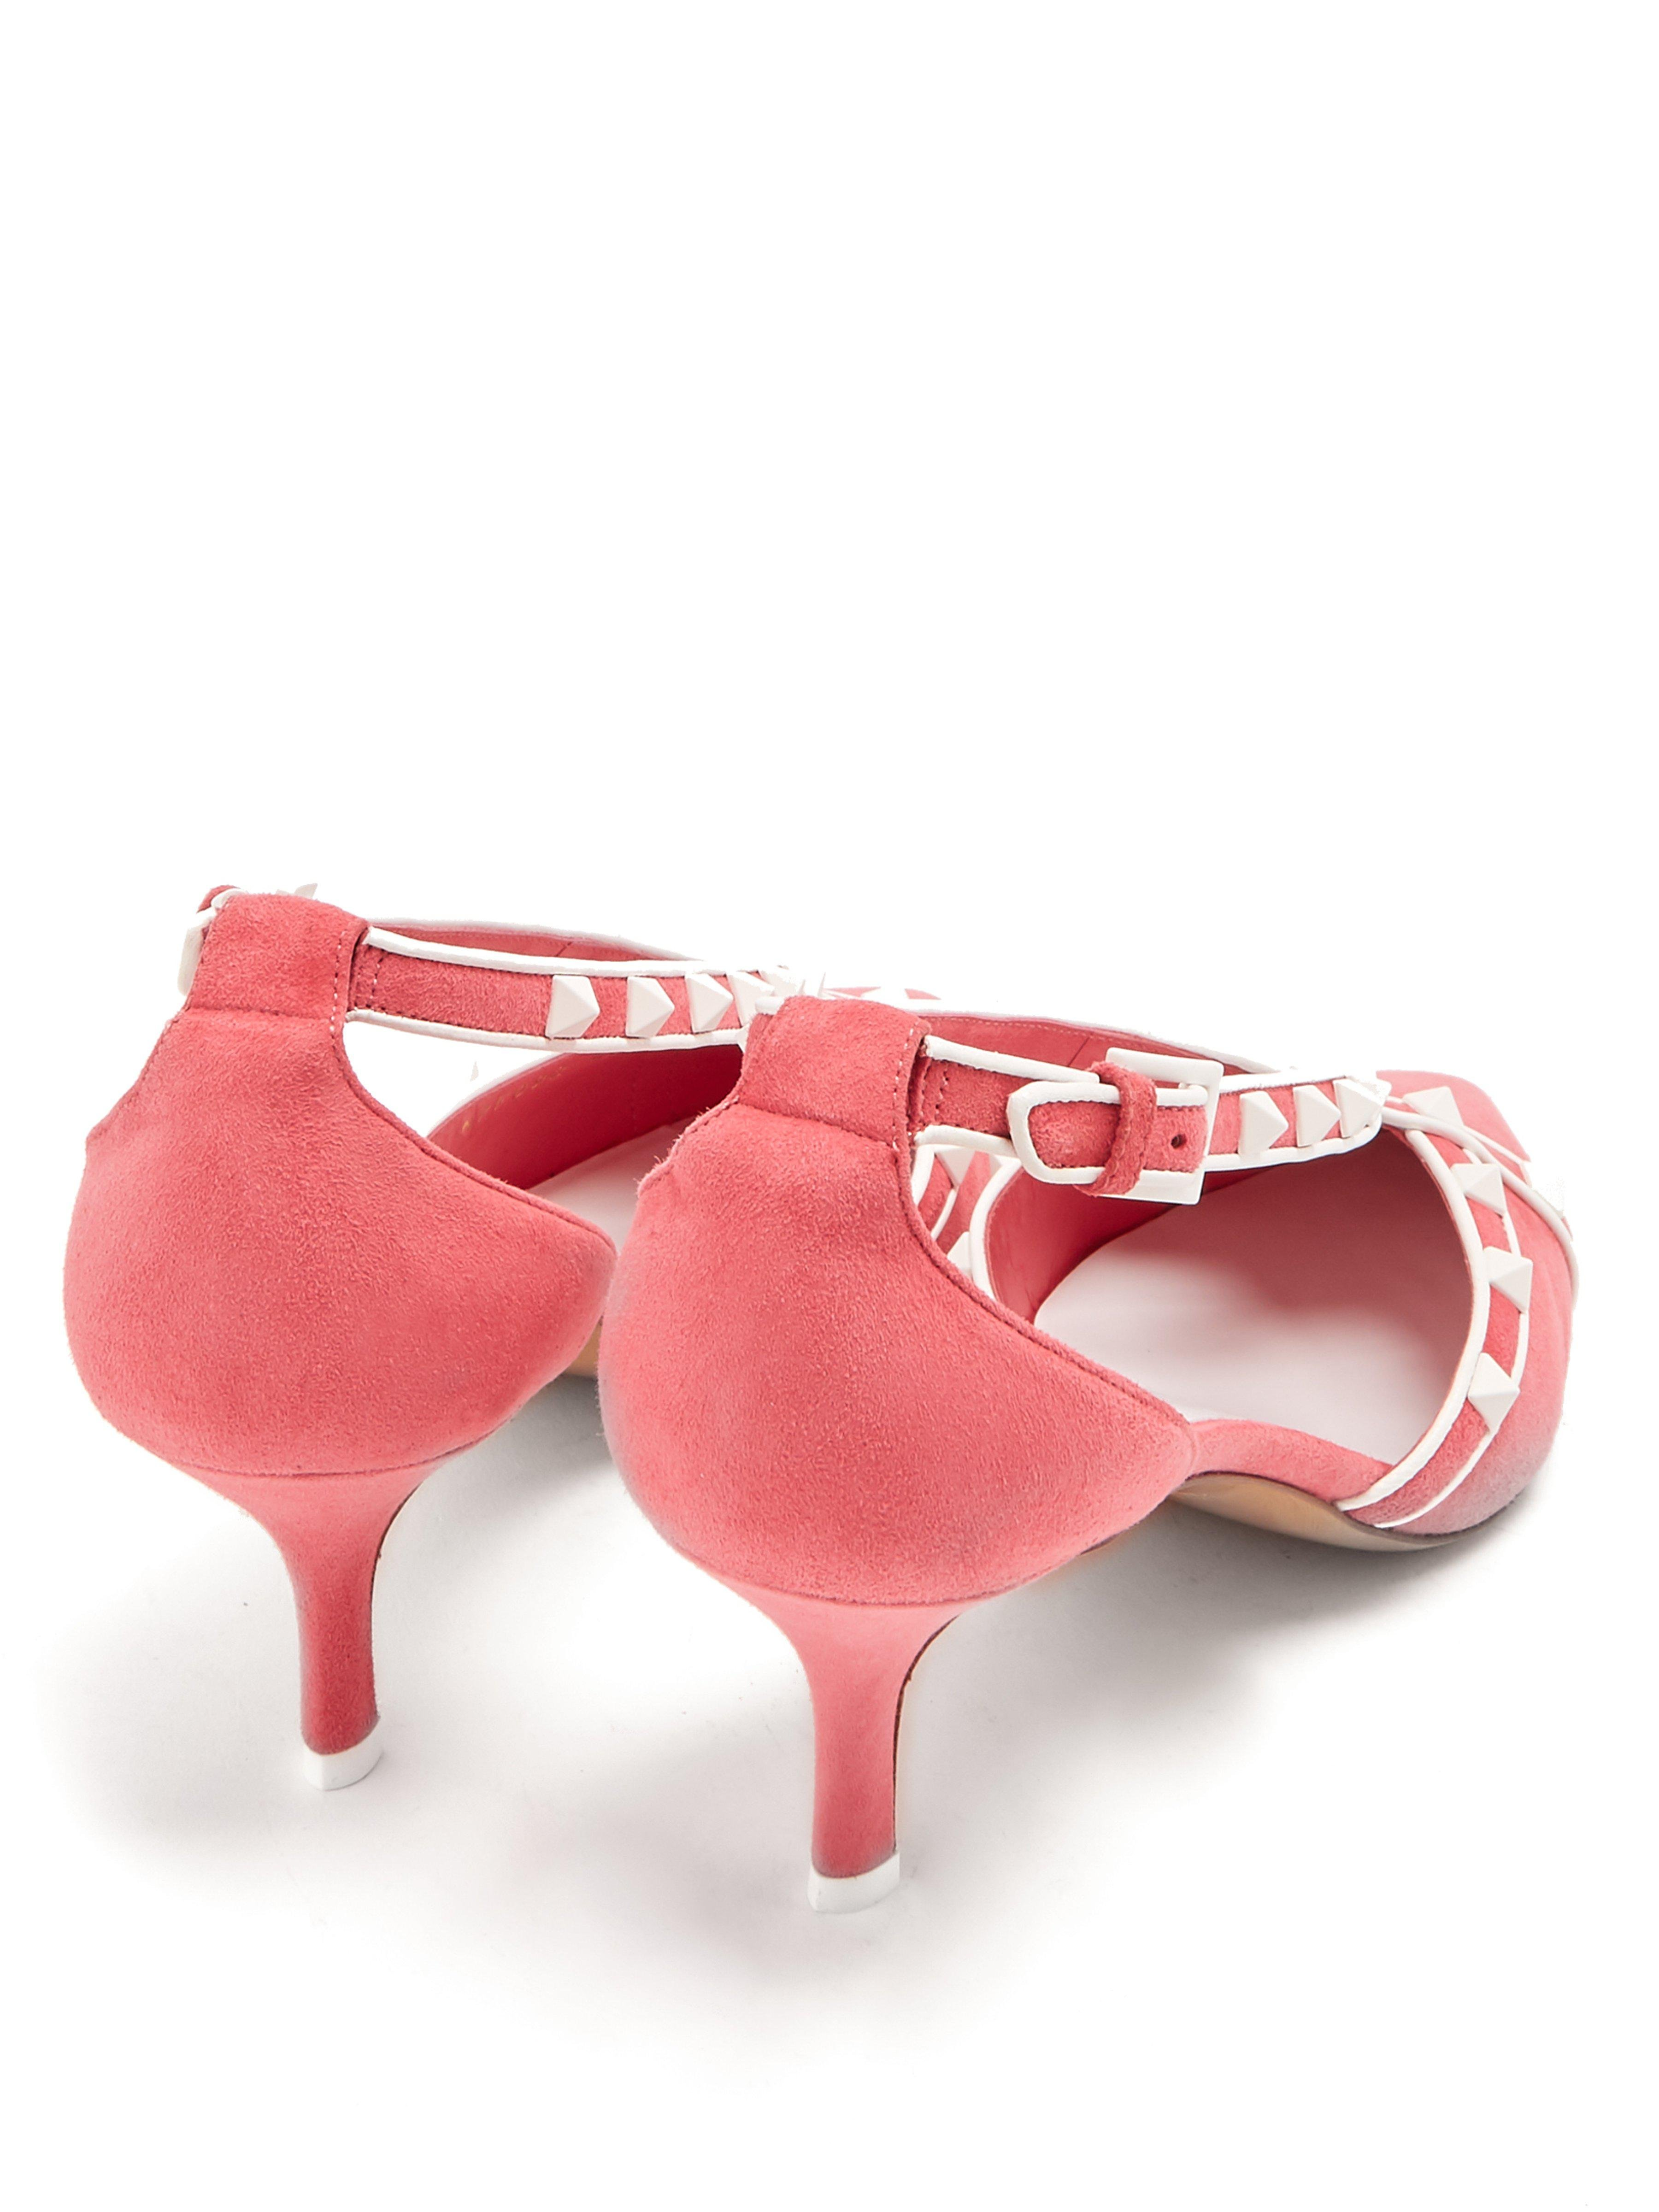 33feab6153 Valentino Free Rockstud Suede Pumps in Pink - Lyst